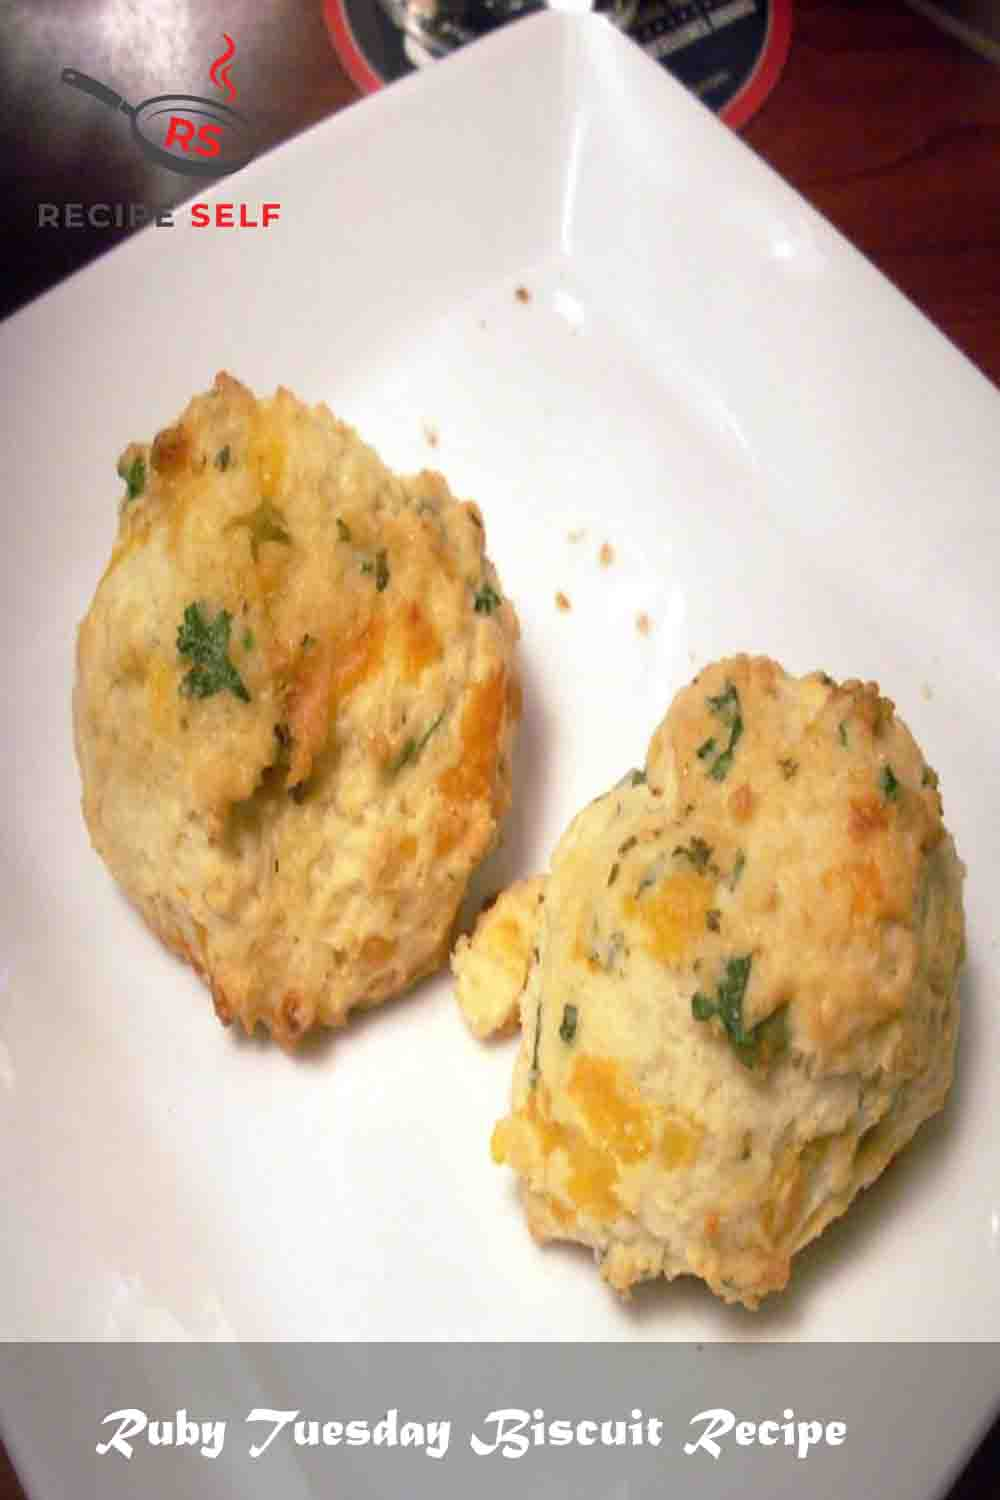 Ruby Tuesday Biscuit Recipe